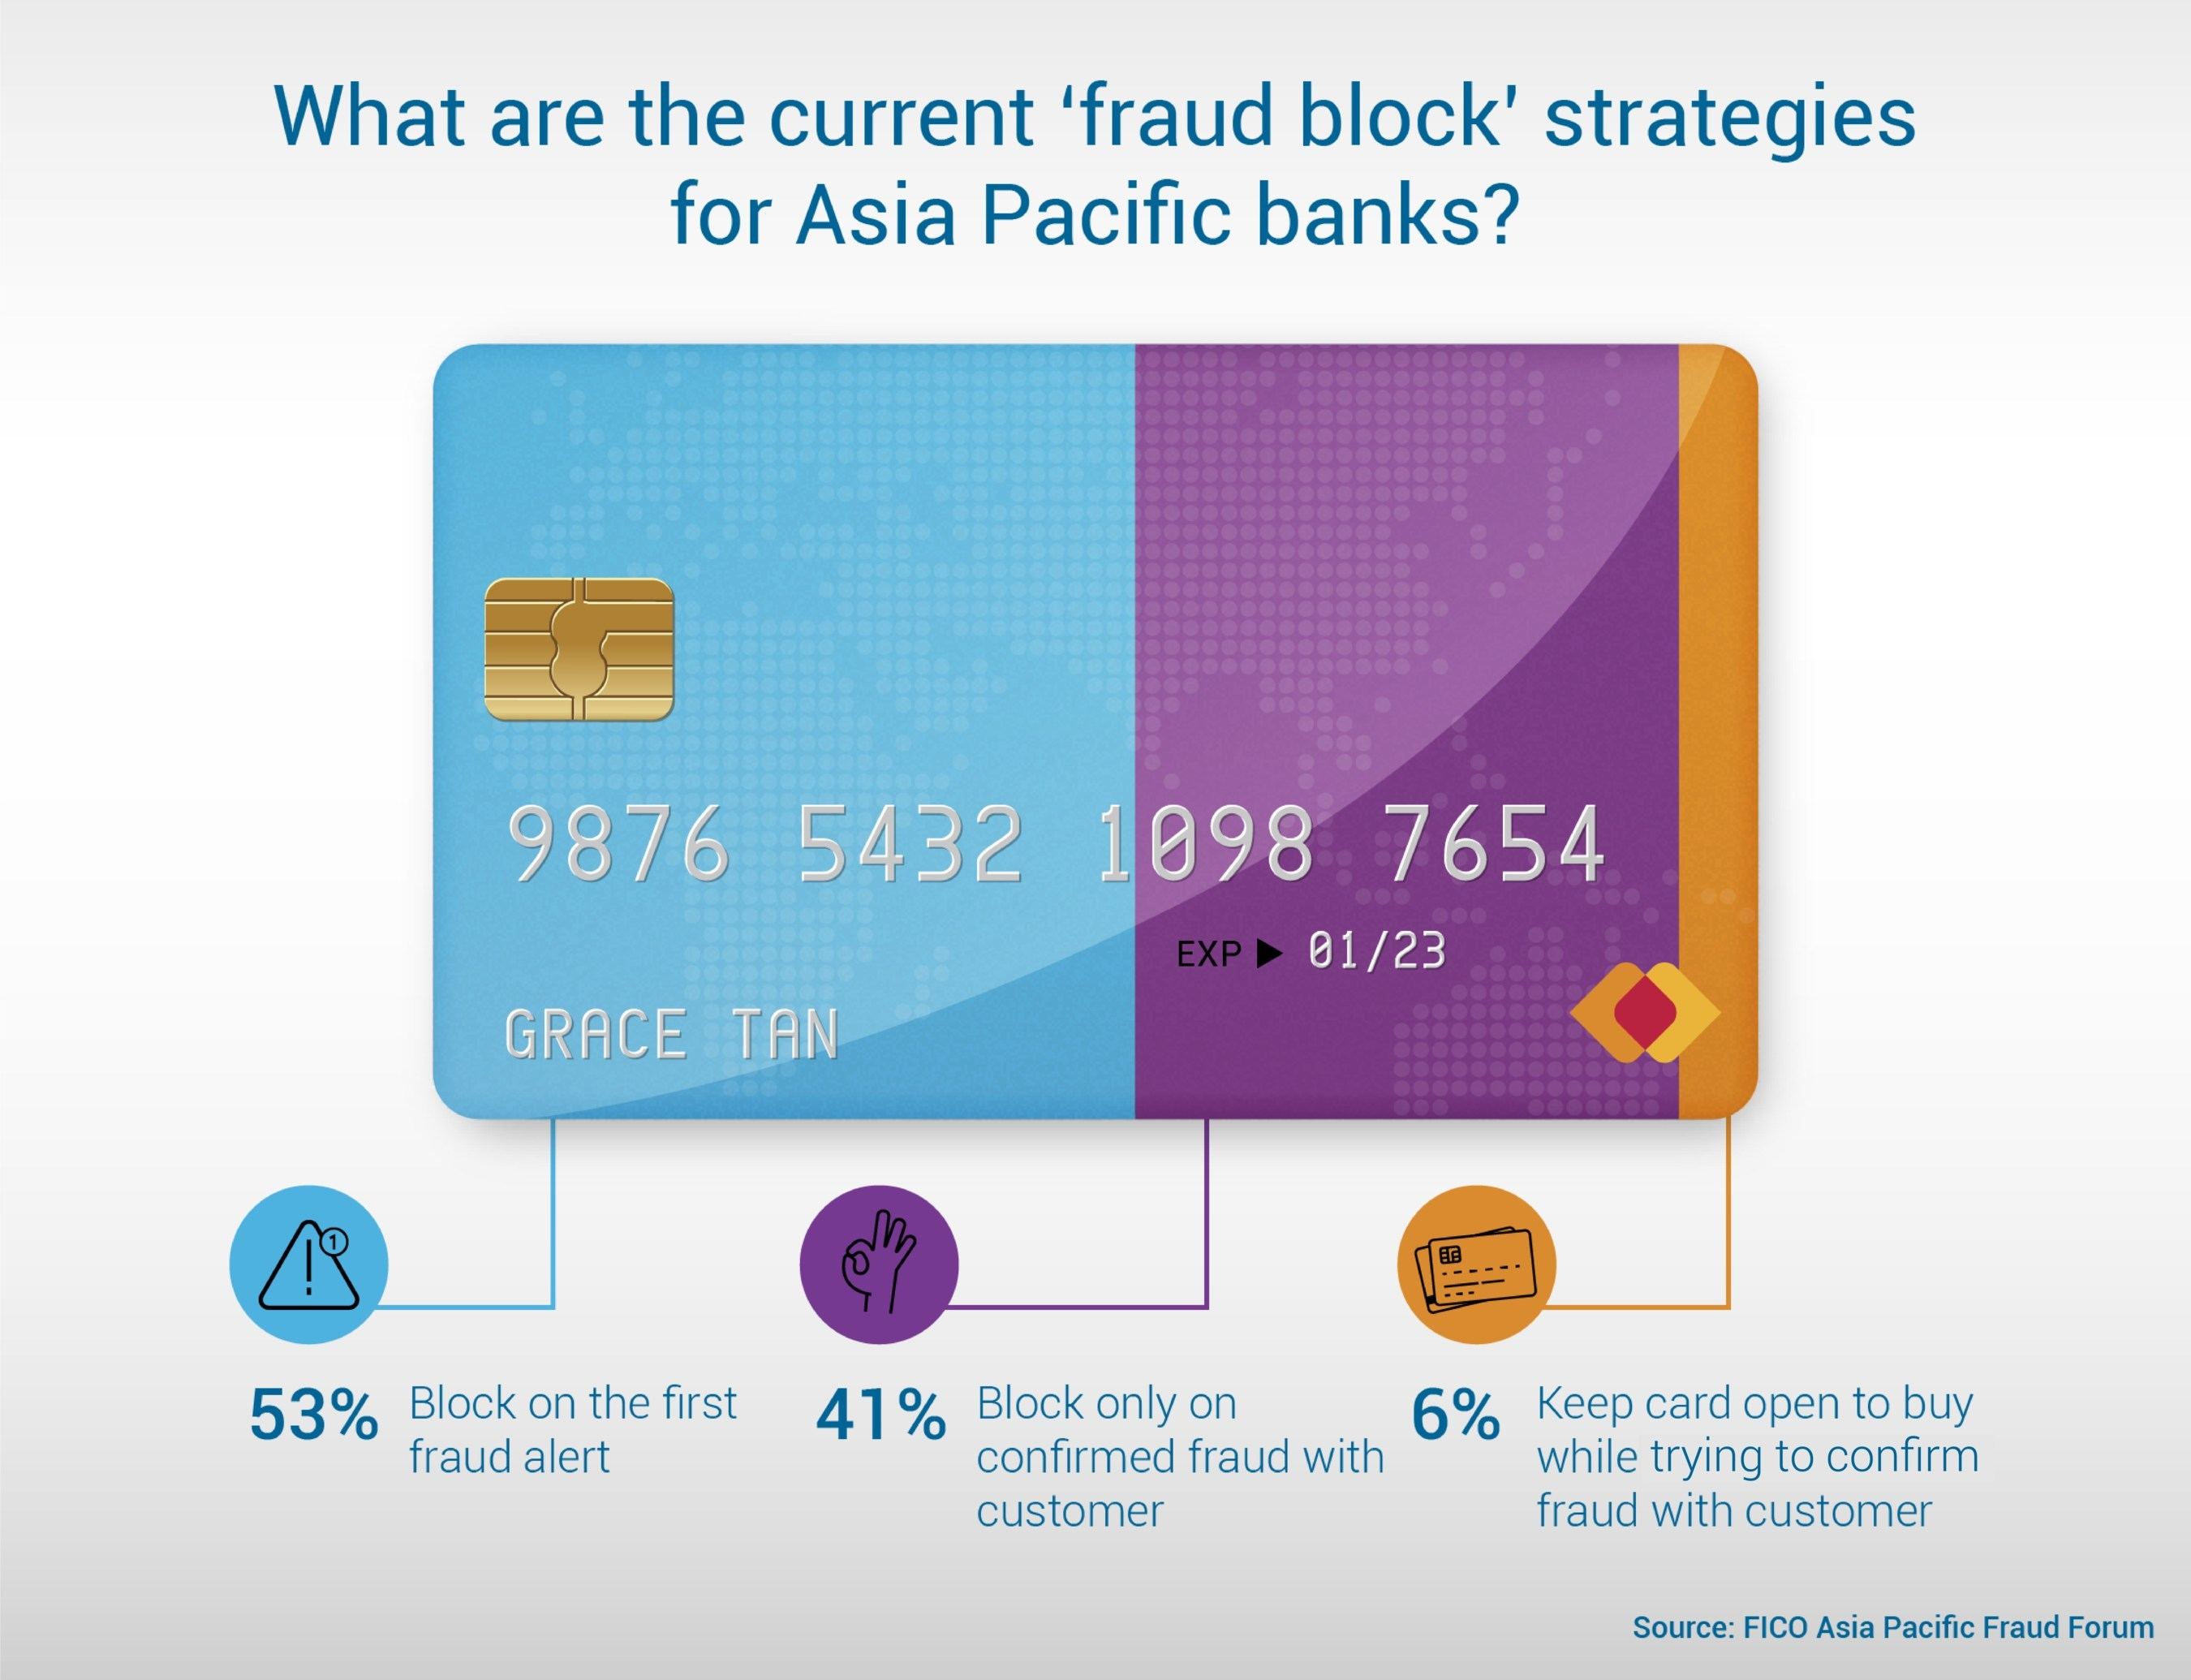 What are the current 'fraud block' strategies for Asia Pacific banks?